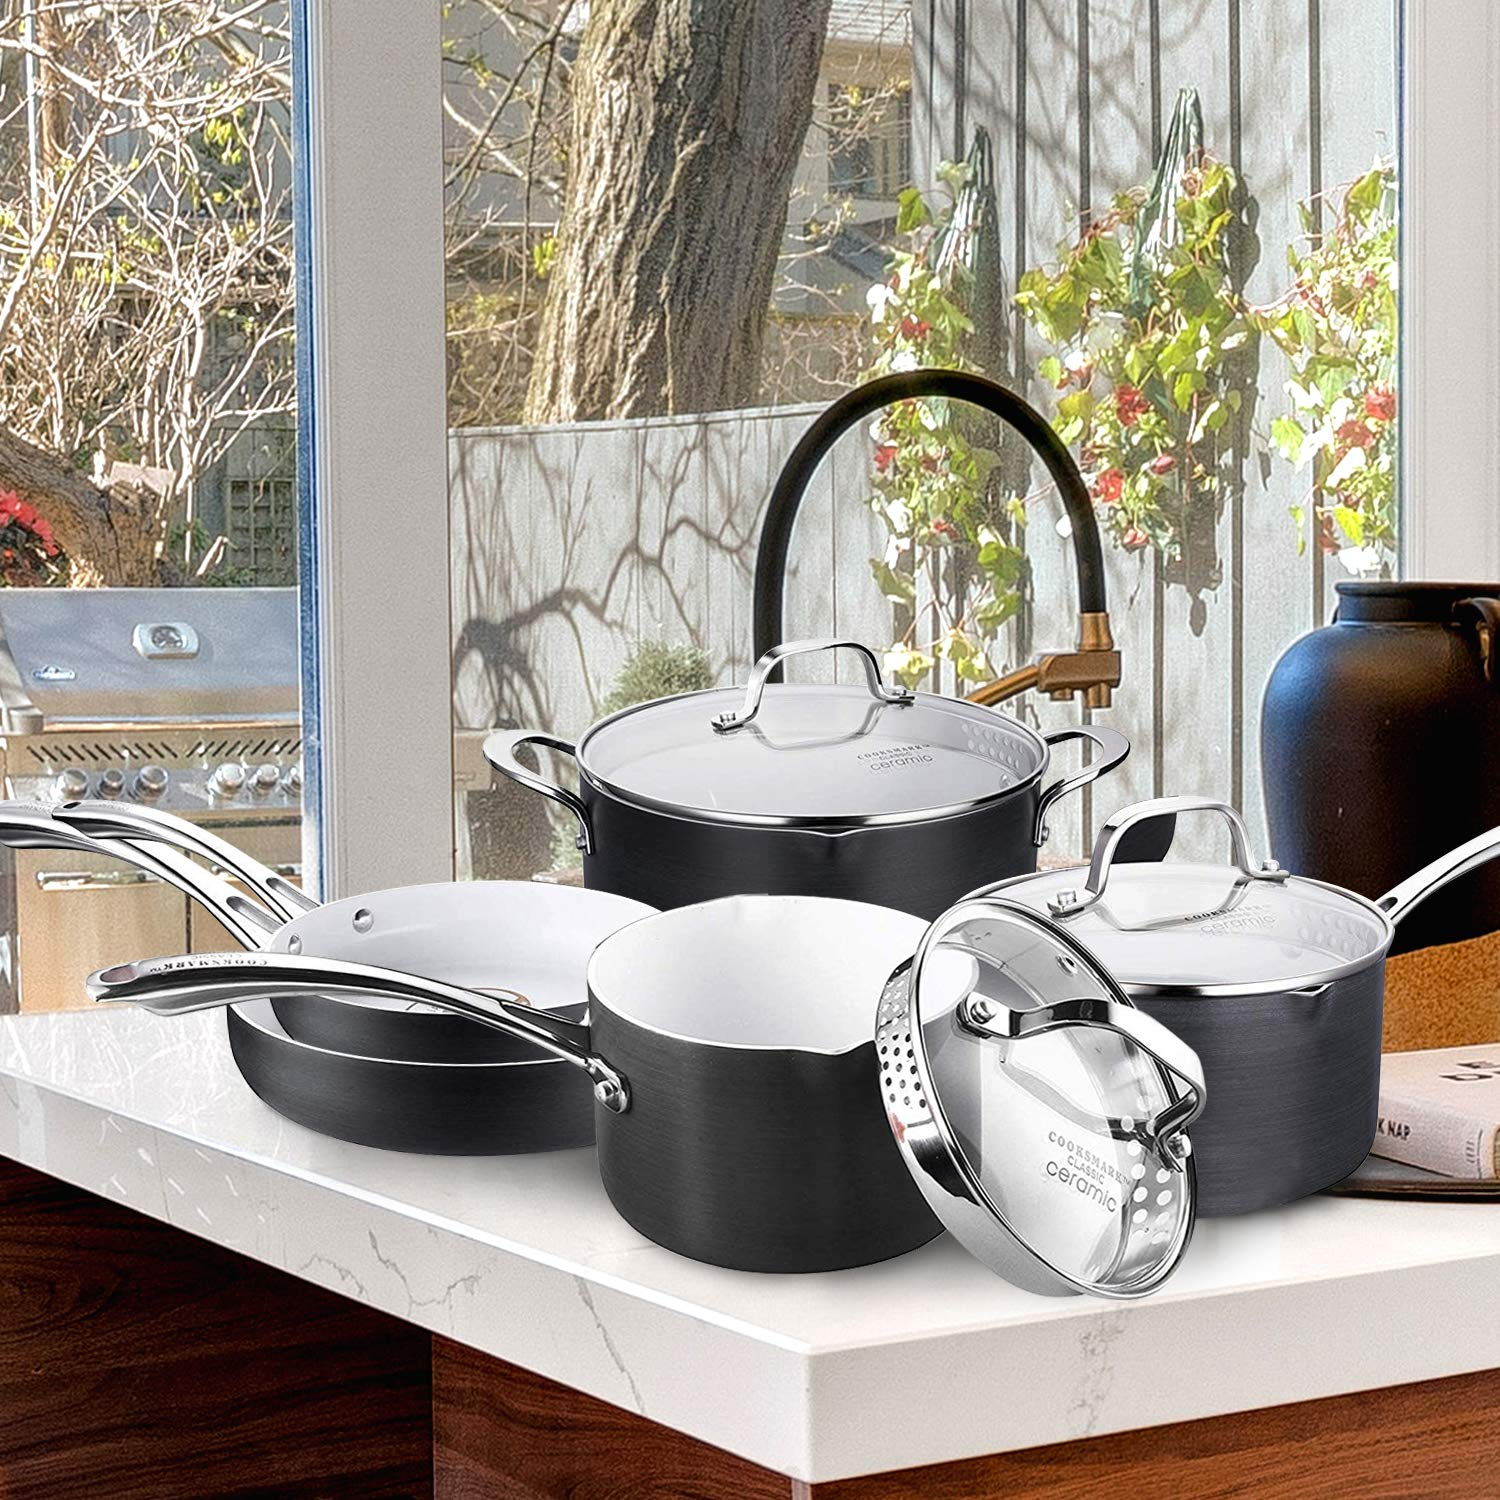 AMERICOOK Black Pots and Pans Set, 8 Piece Hard Anodized Cookware Set – White Ceramic Nonstick, Aluminium Saucepans with Sturdy Glass Lids, Straining Lids and Pour Spouts and Stainless steel Handles